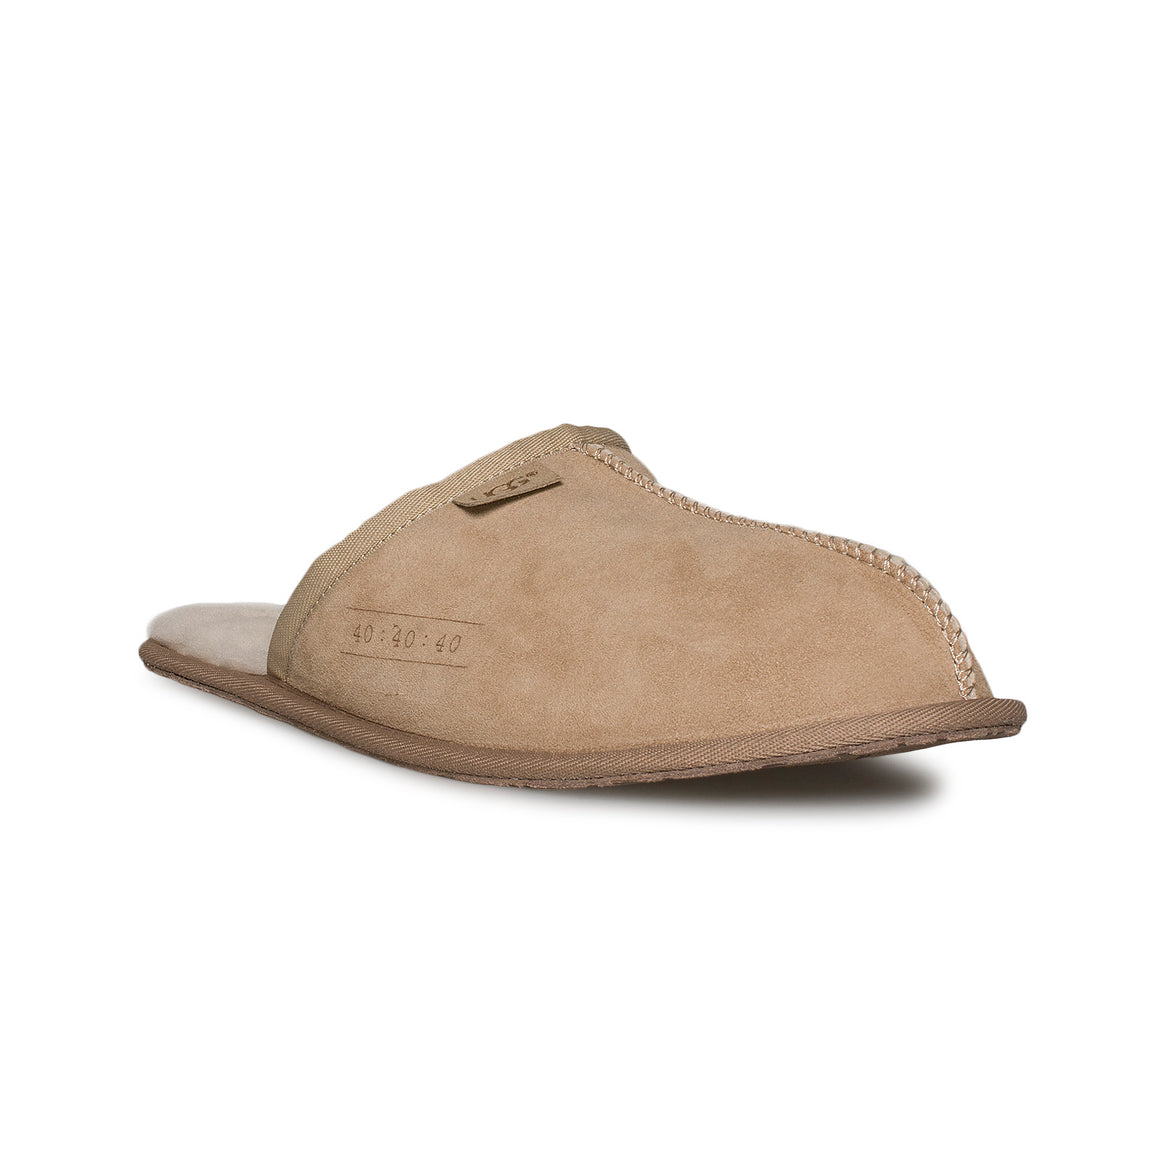 UGG Scuffette 40:40:40 Sand Slippers - Men's